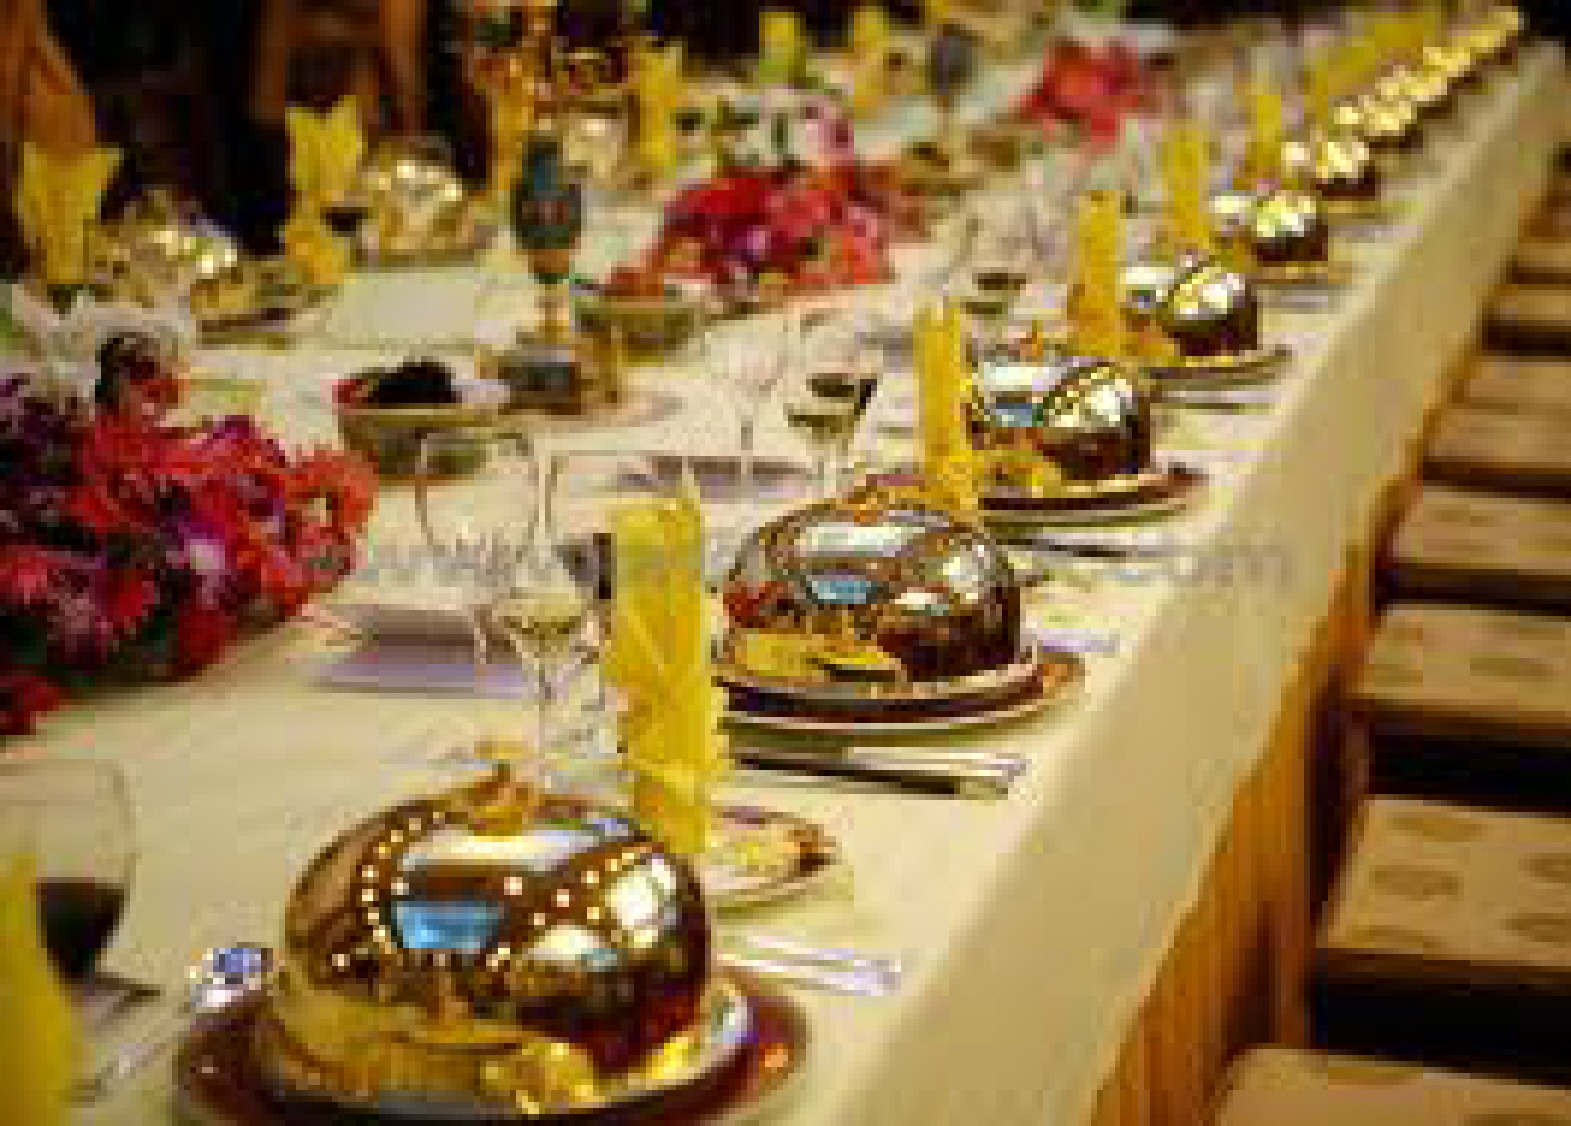 Buffet table 100 more photos - Buffet table images ...